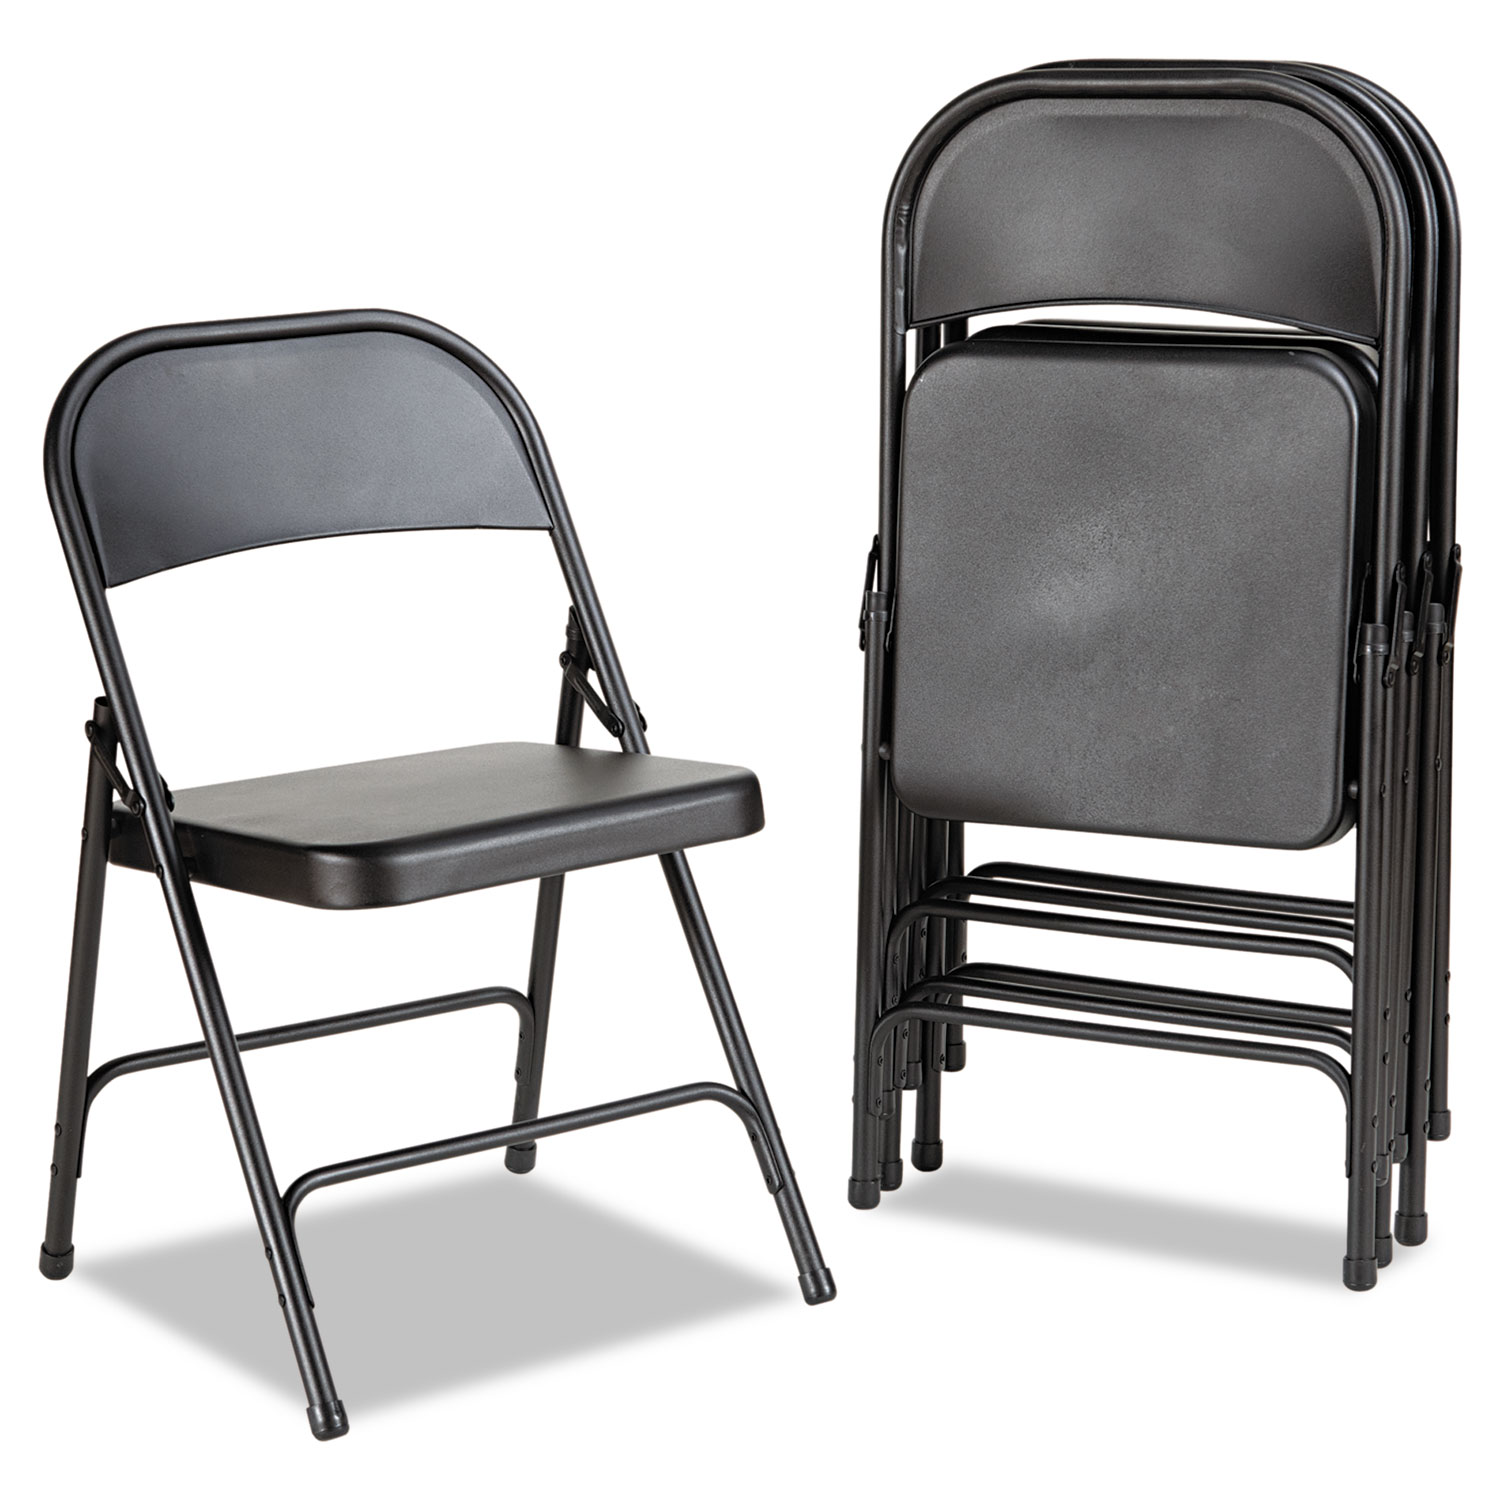 Chairs Folding Steel Folding Chair With Two Brace Support Graphite 4 Carton